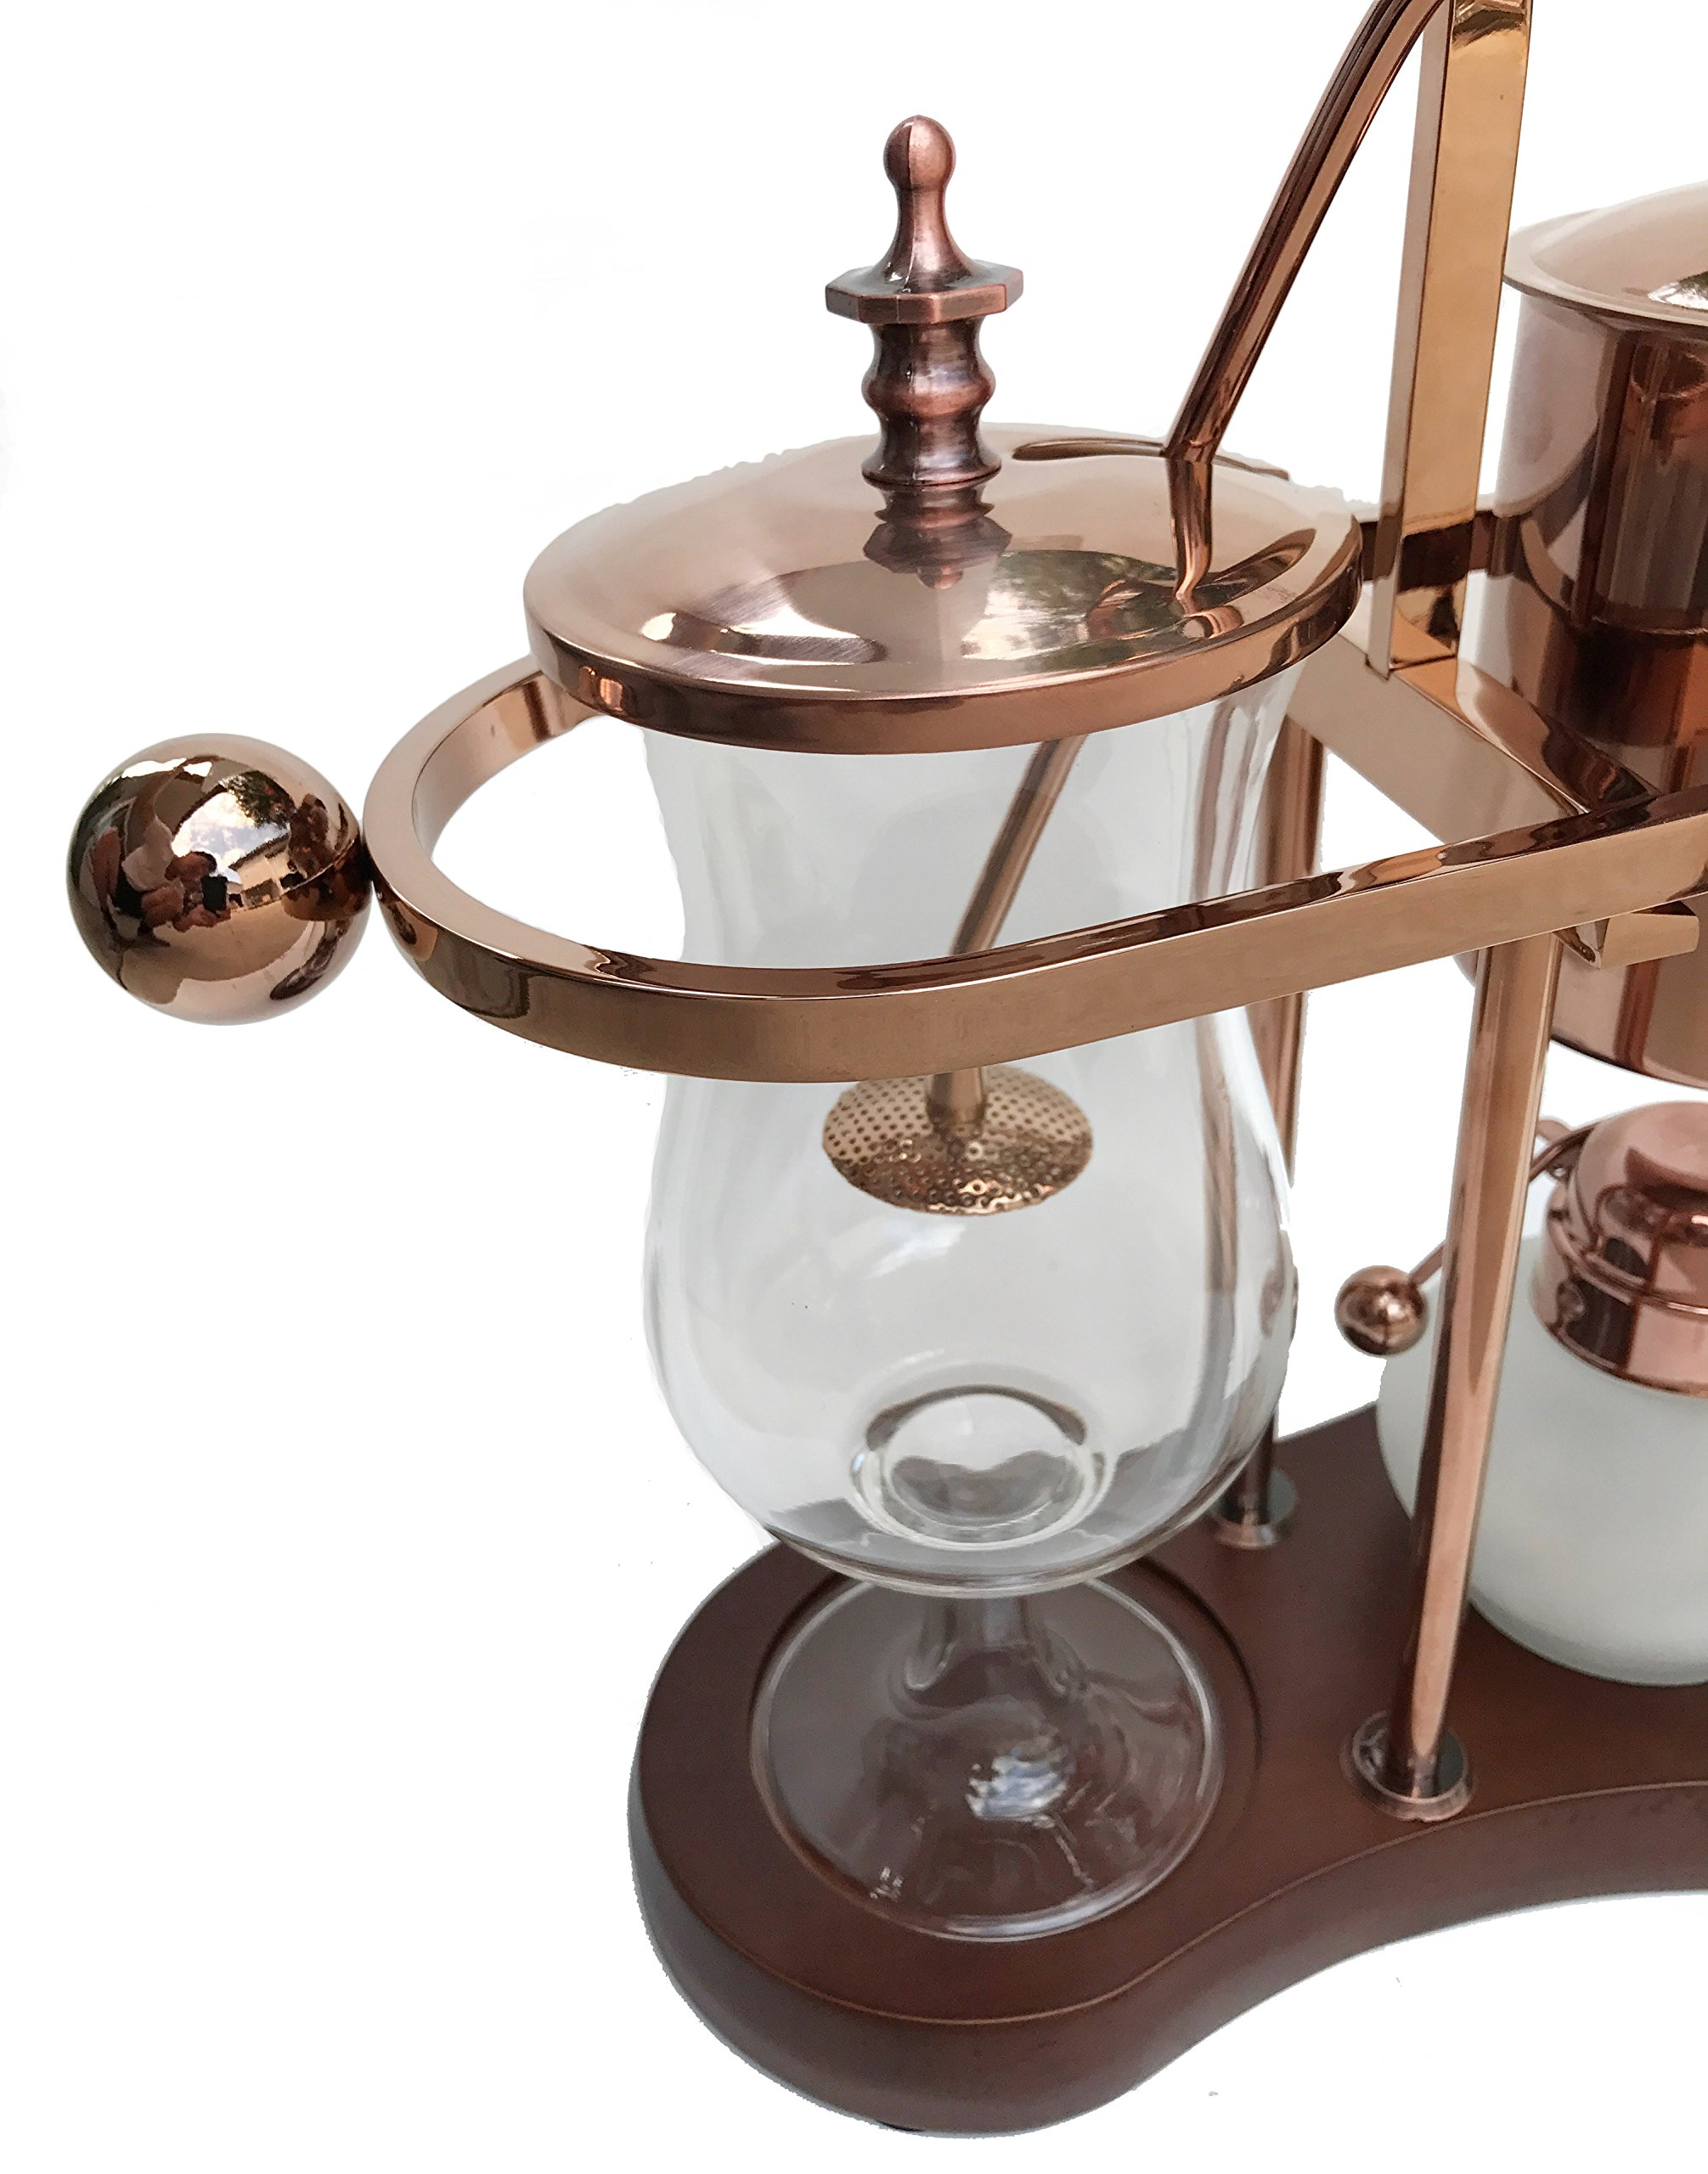 Nispira Belgian Belgium Luxury Royal Family Balance Syphon Siphon Coffee Maker Copper Color, 1 set by Nispira (Image #4)